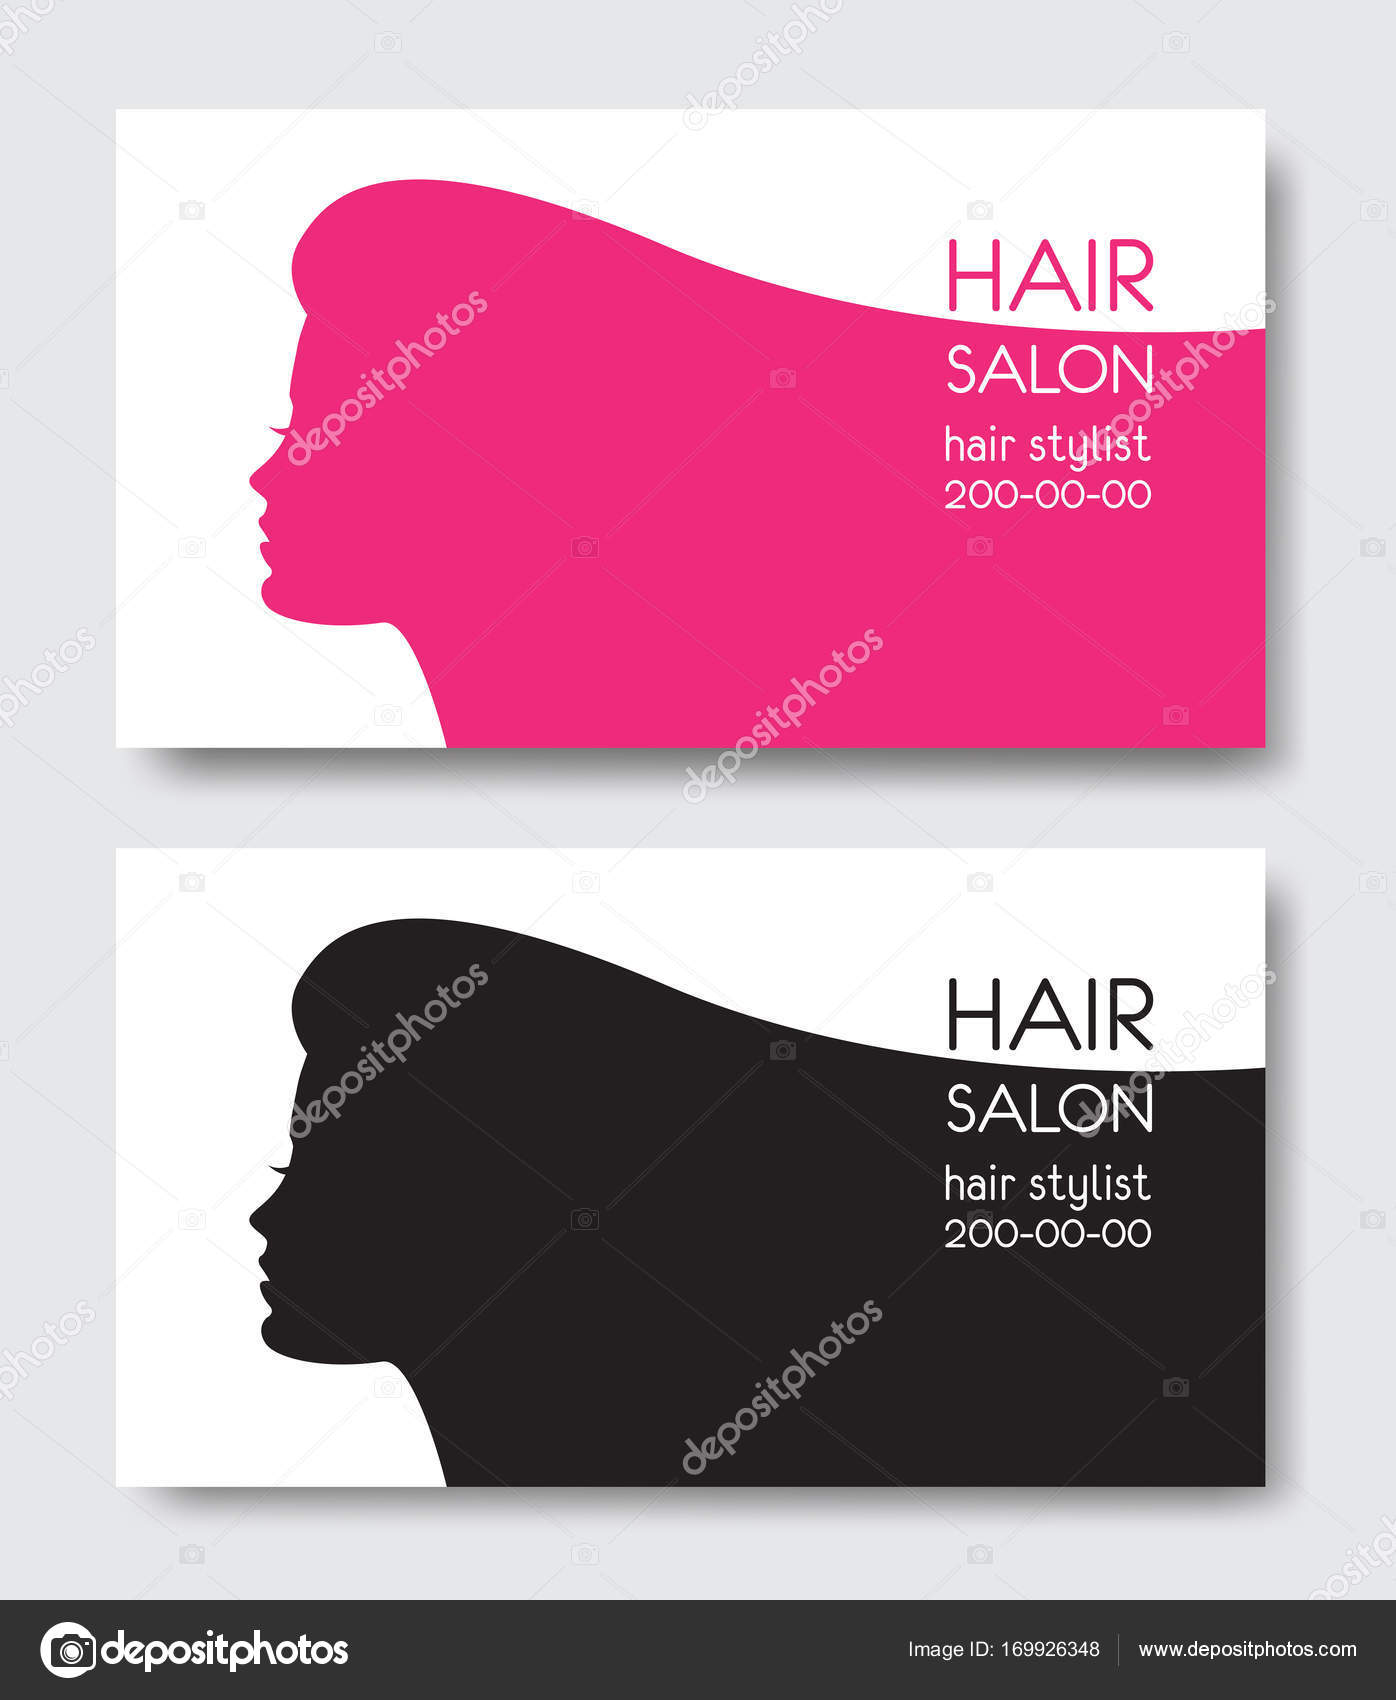 Hair salon business card templates with beautiful woman face sil hair salon business card templates with beautiful woman face sil stock vector fbccfo